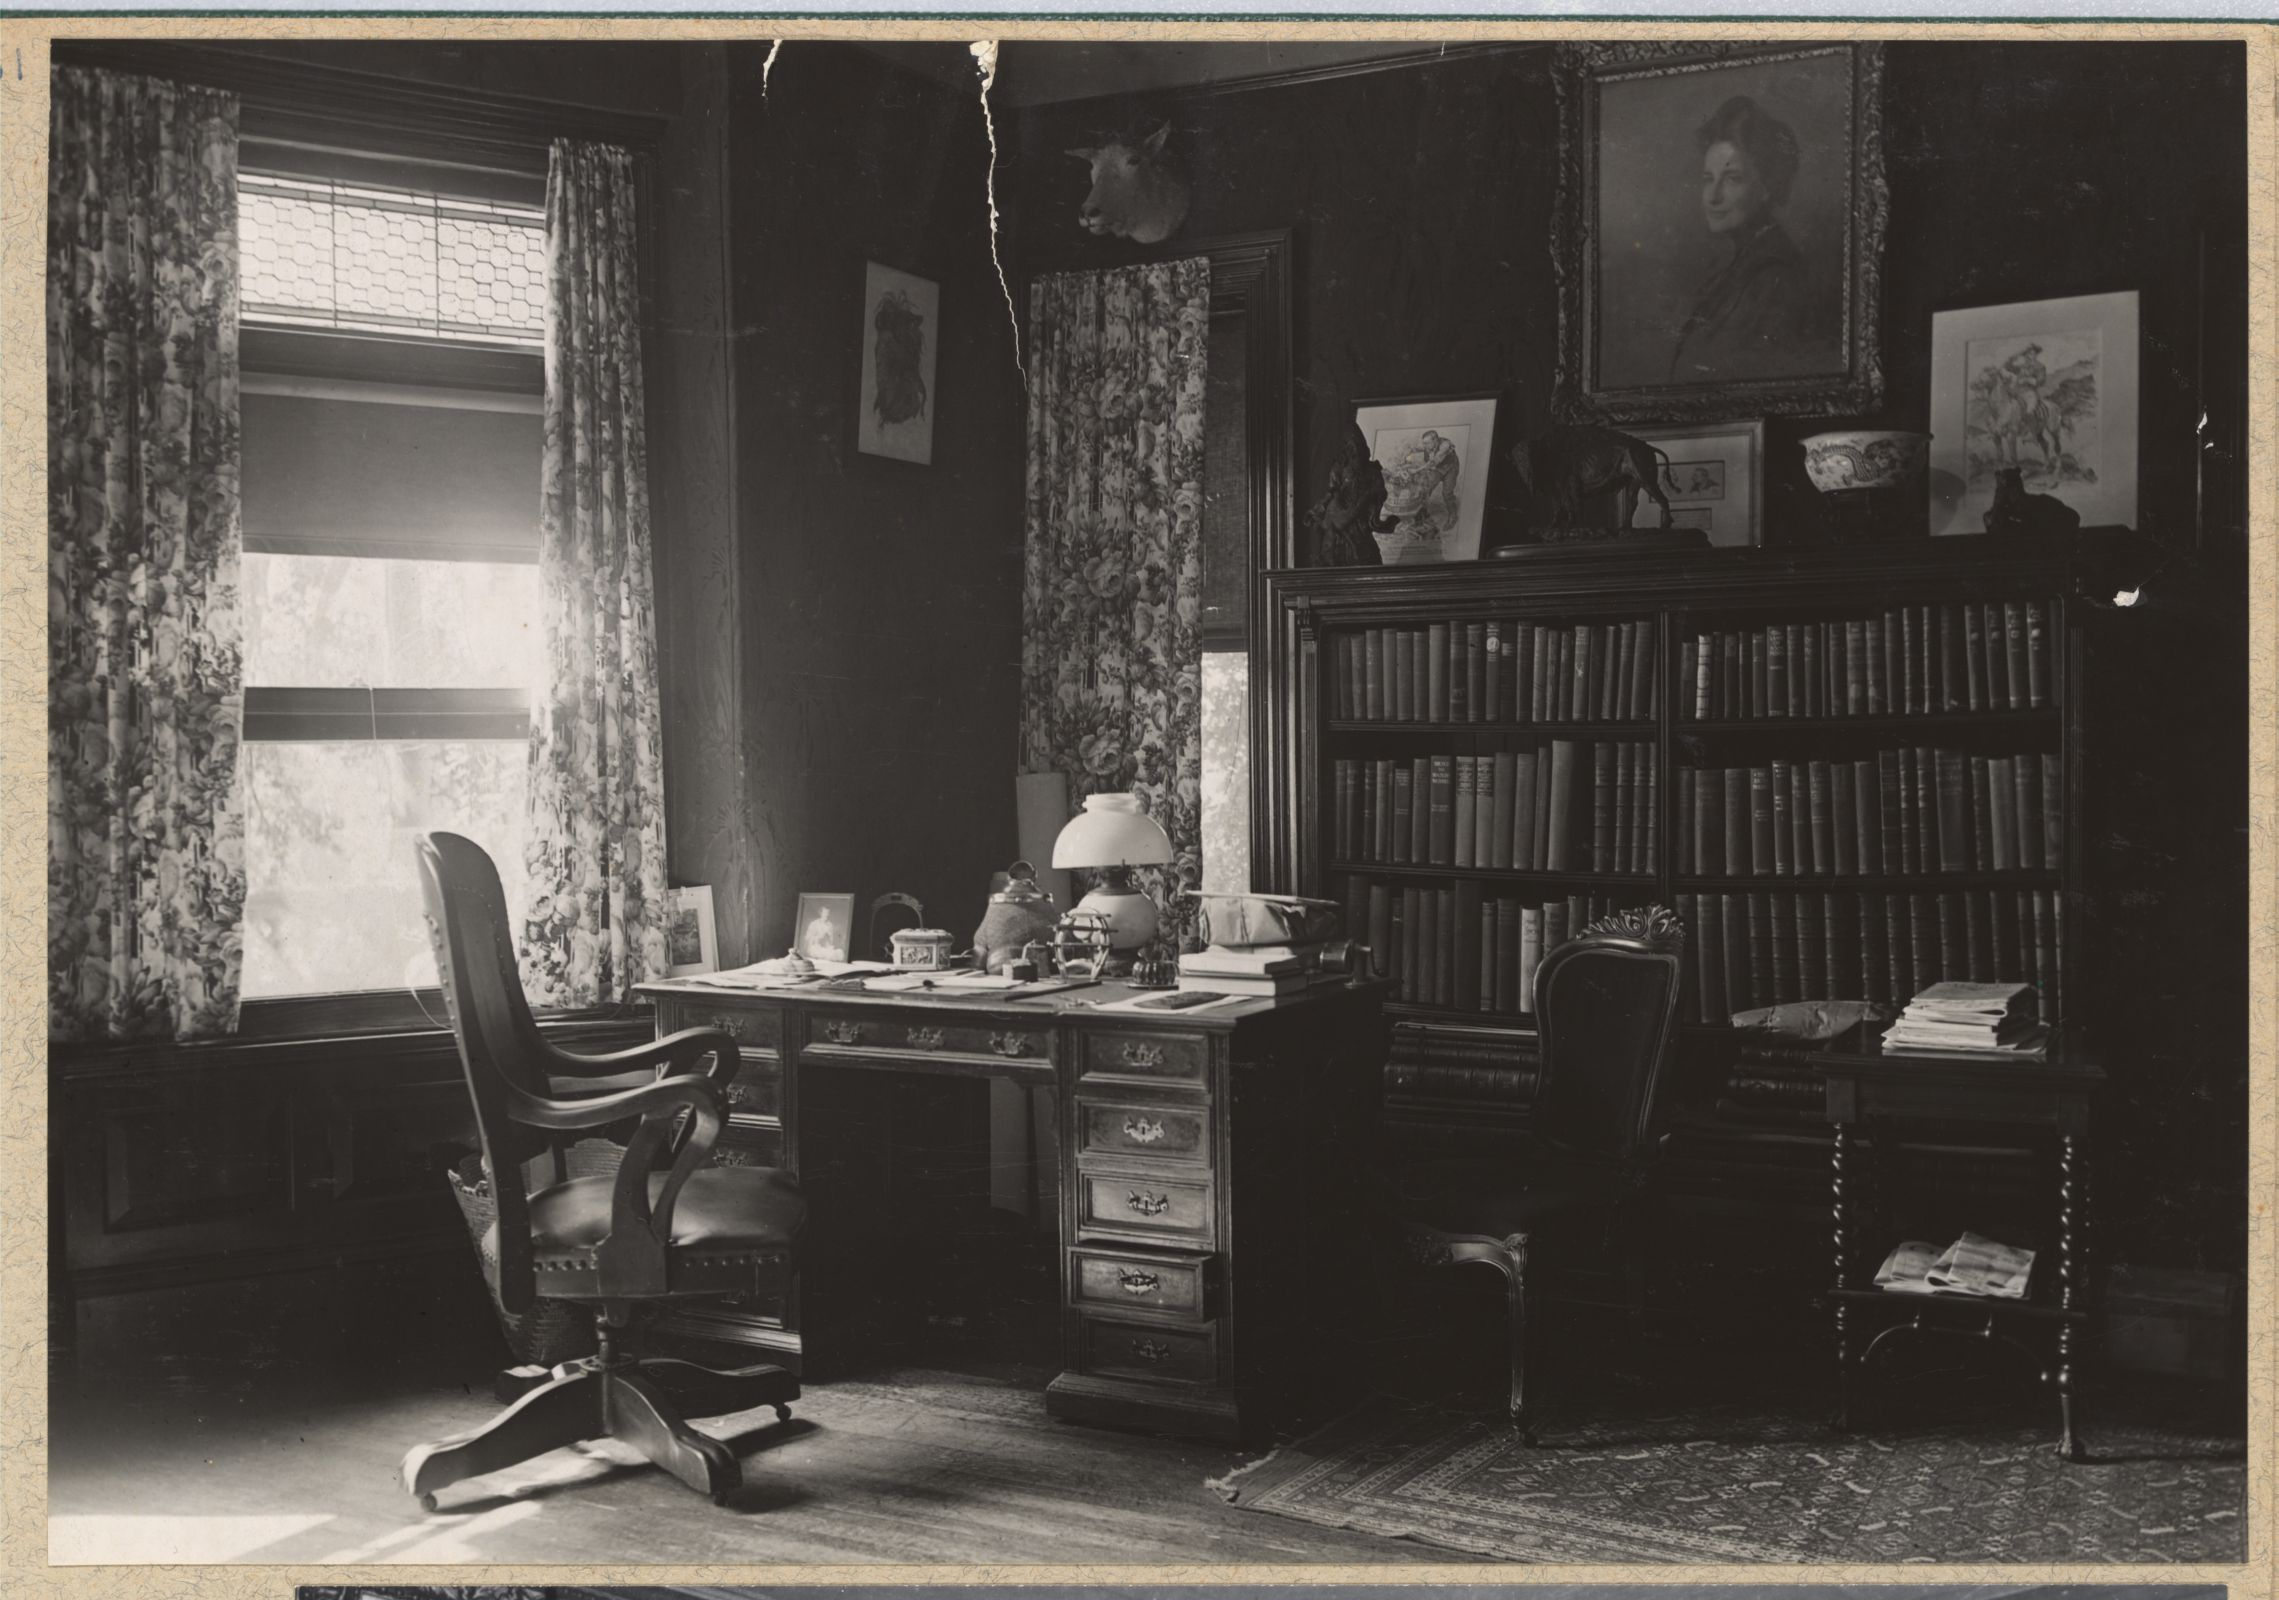 Theodore Roosevelt's desk in his library at Sagamore Hill circa 1912. From the Roosevelt Family albums, Library of Congress Prints and Photographs division.